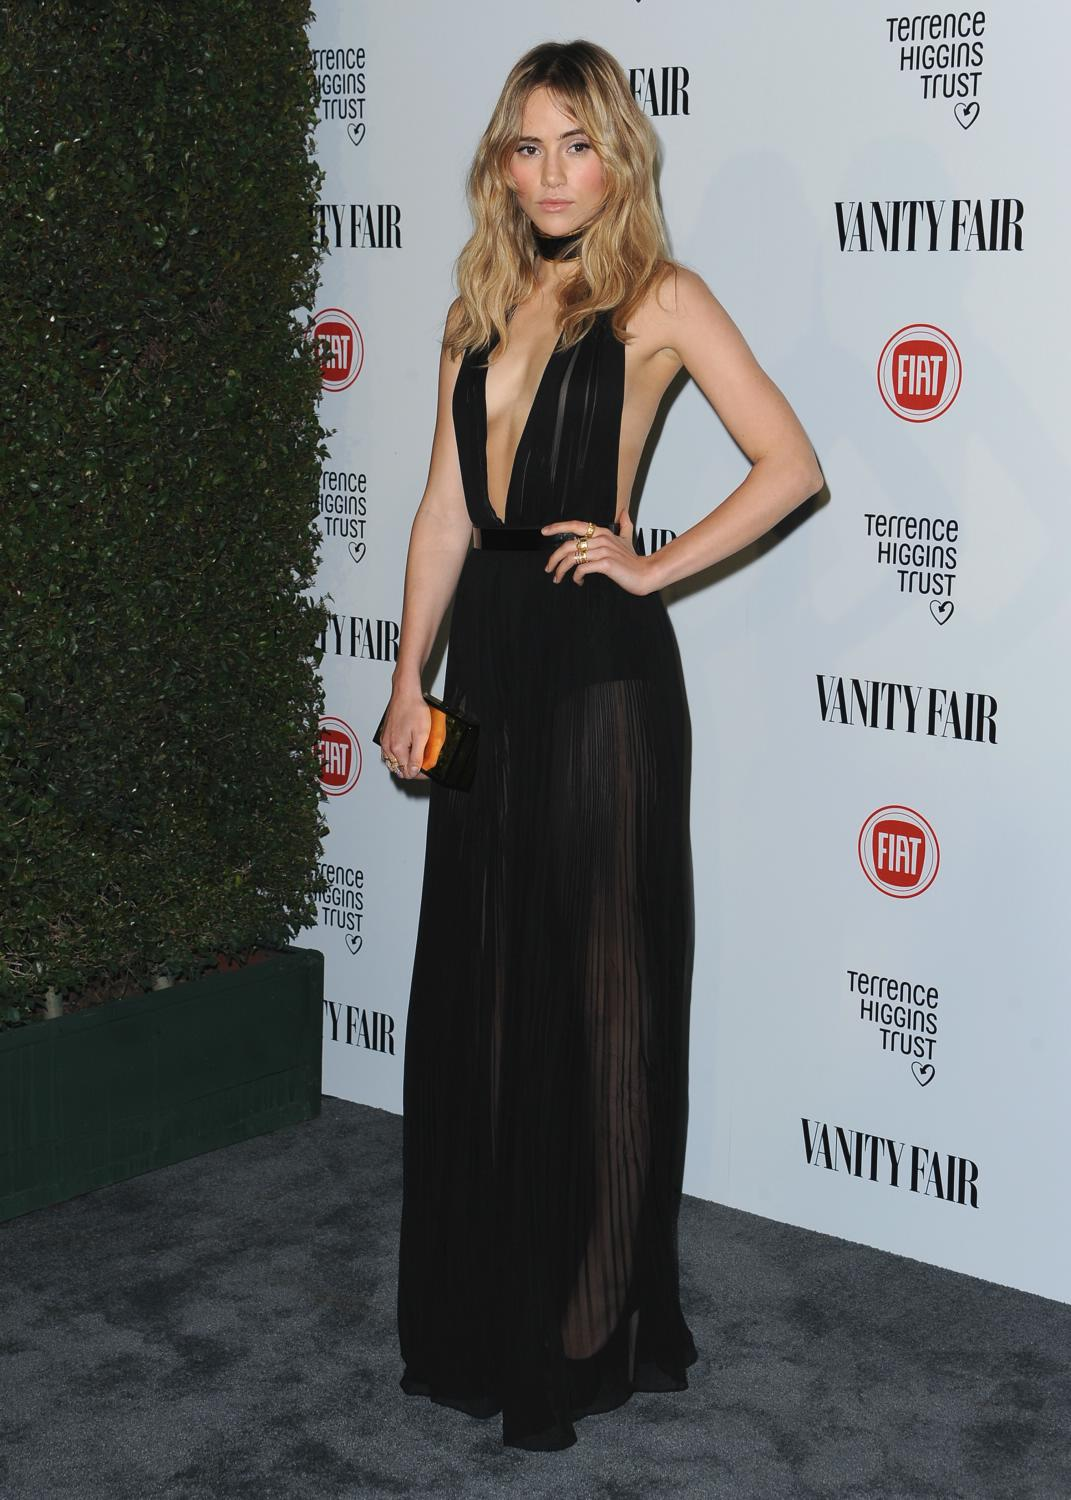 Suki Waterhouse ate Vanity Fair and Fiat Young Hollywood event-1